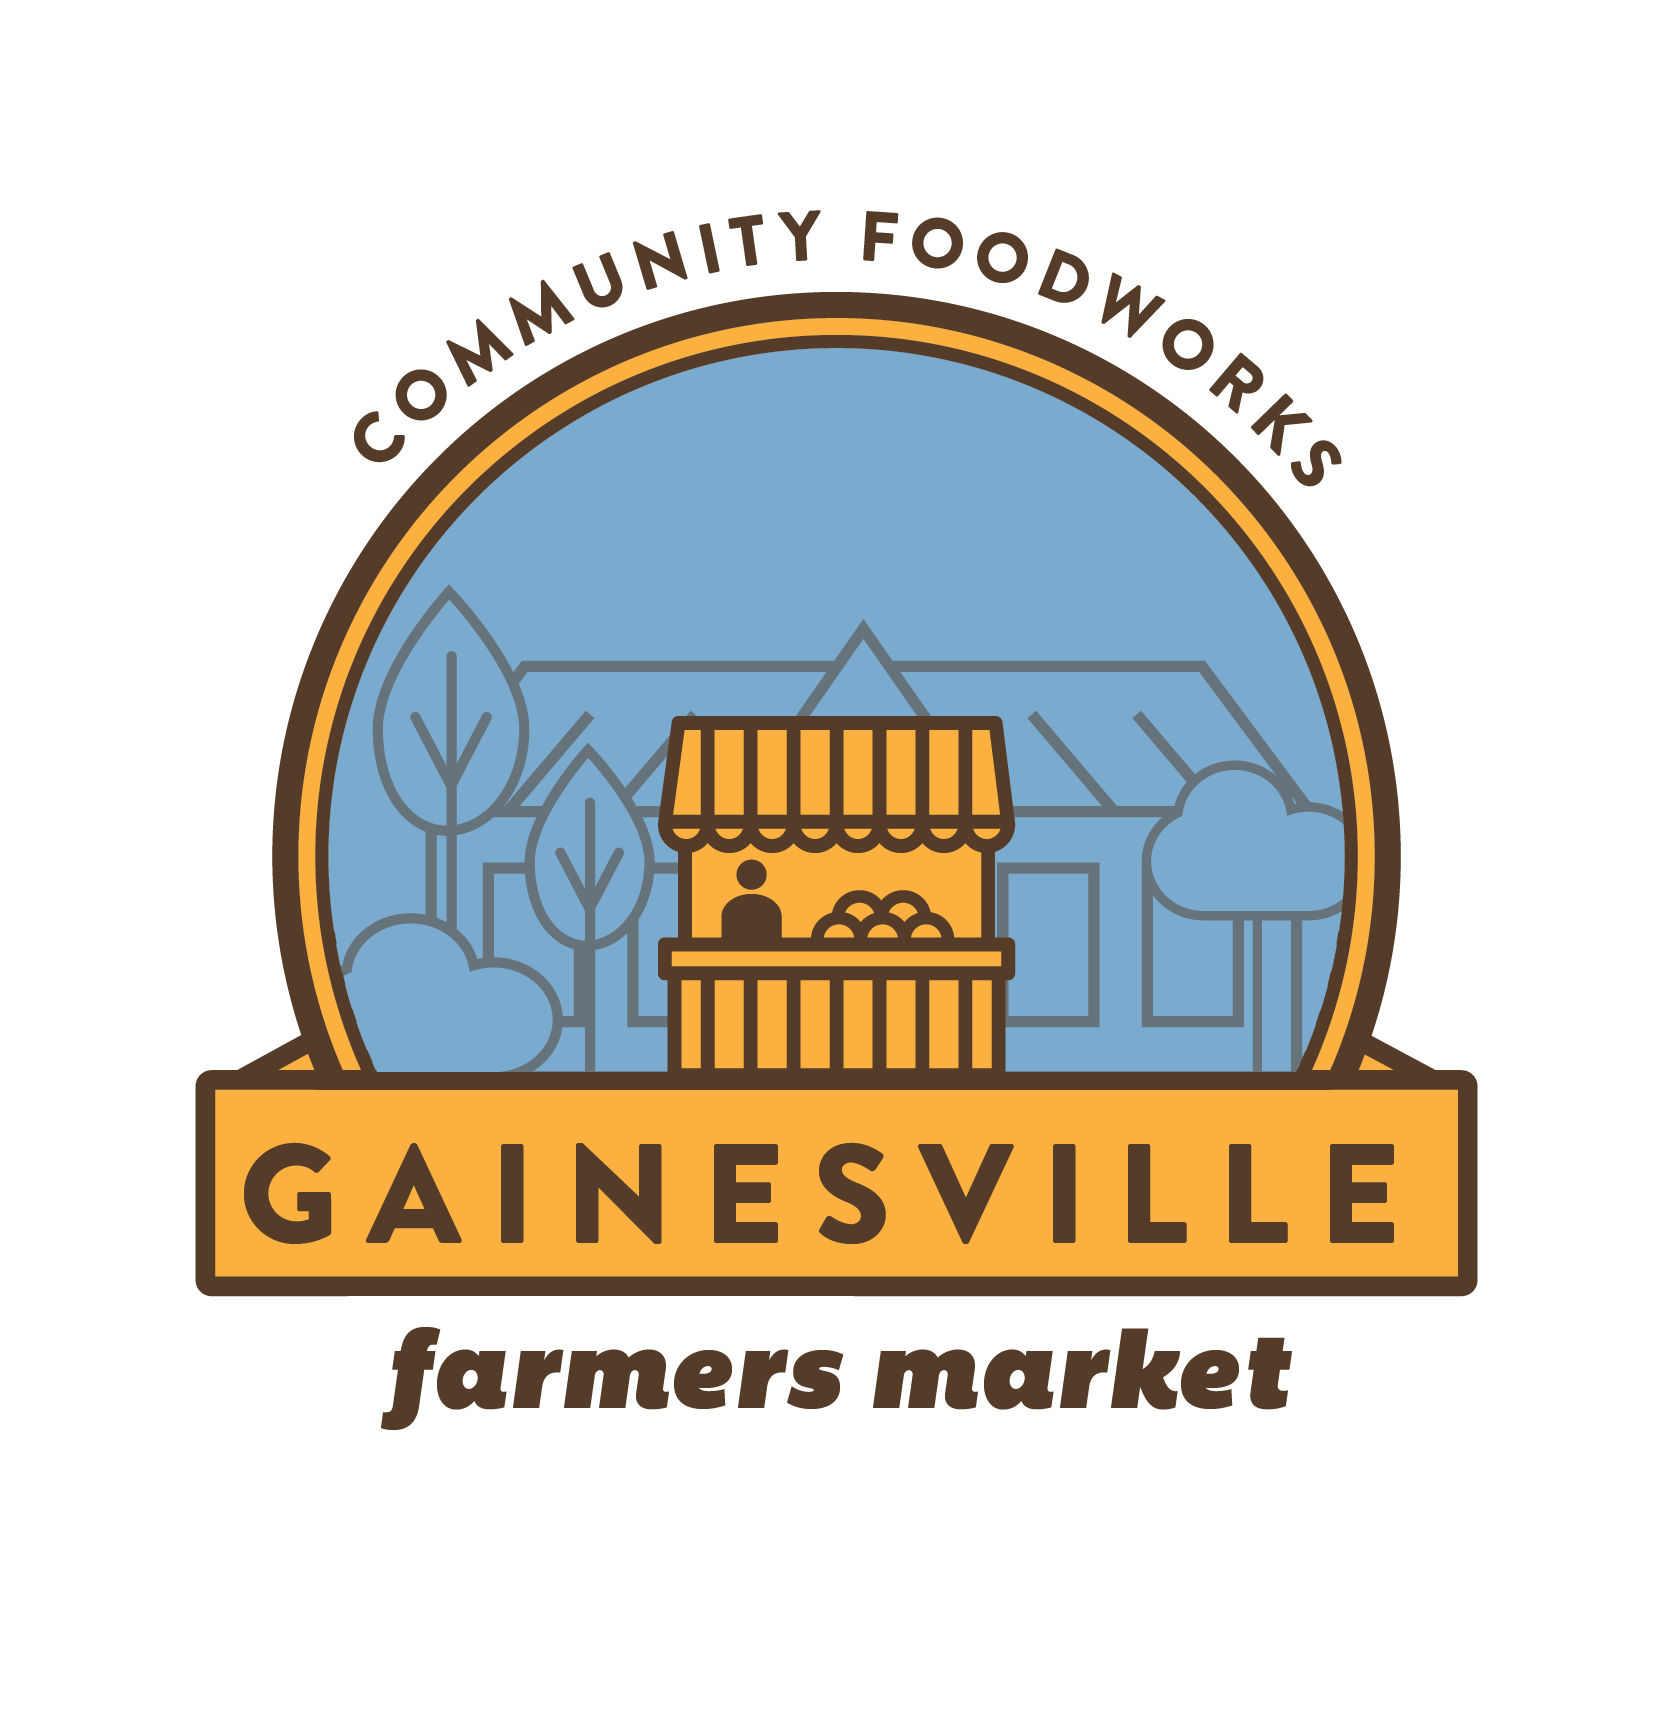 CFW_Farmers-Markets_Gainesville-01.png